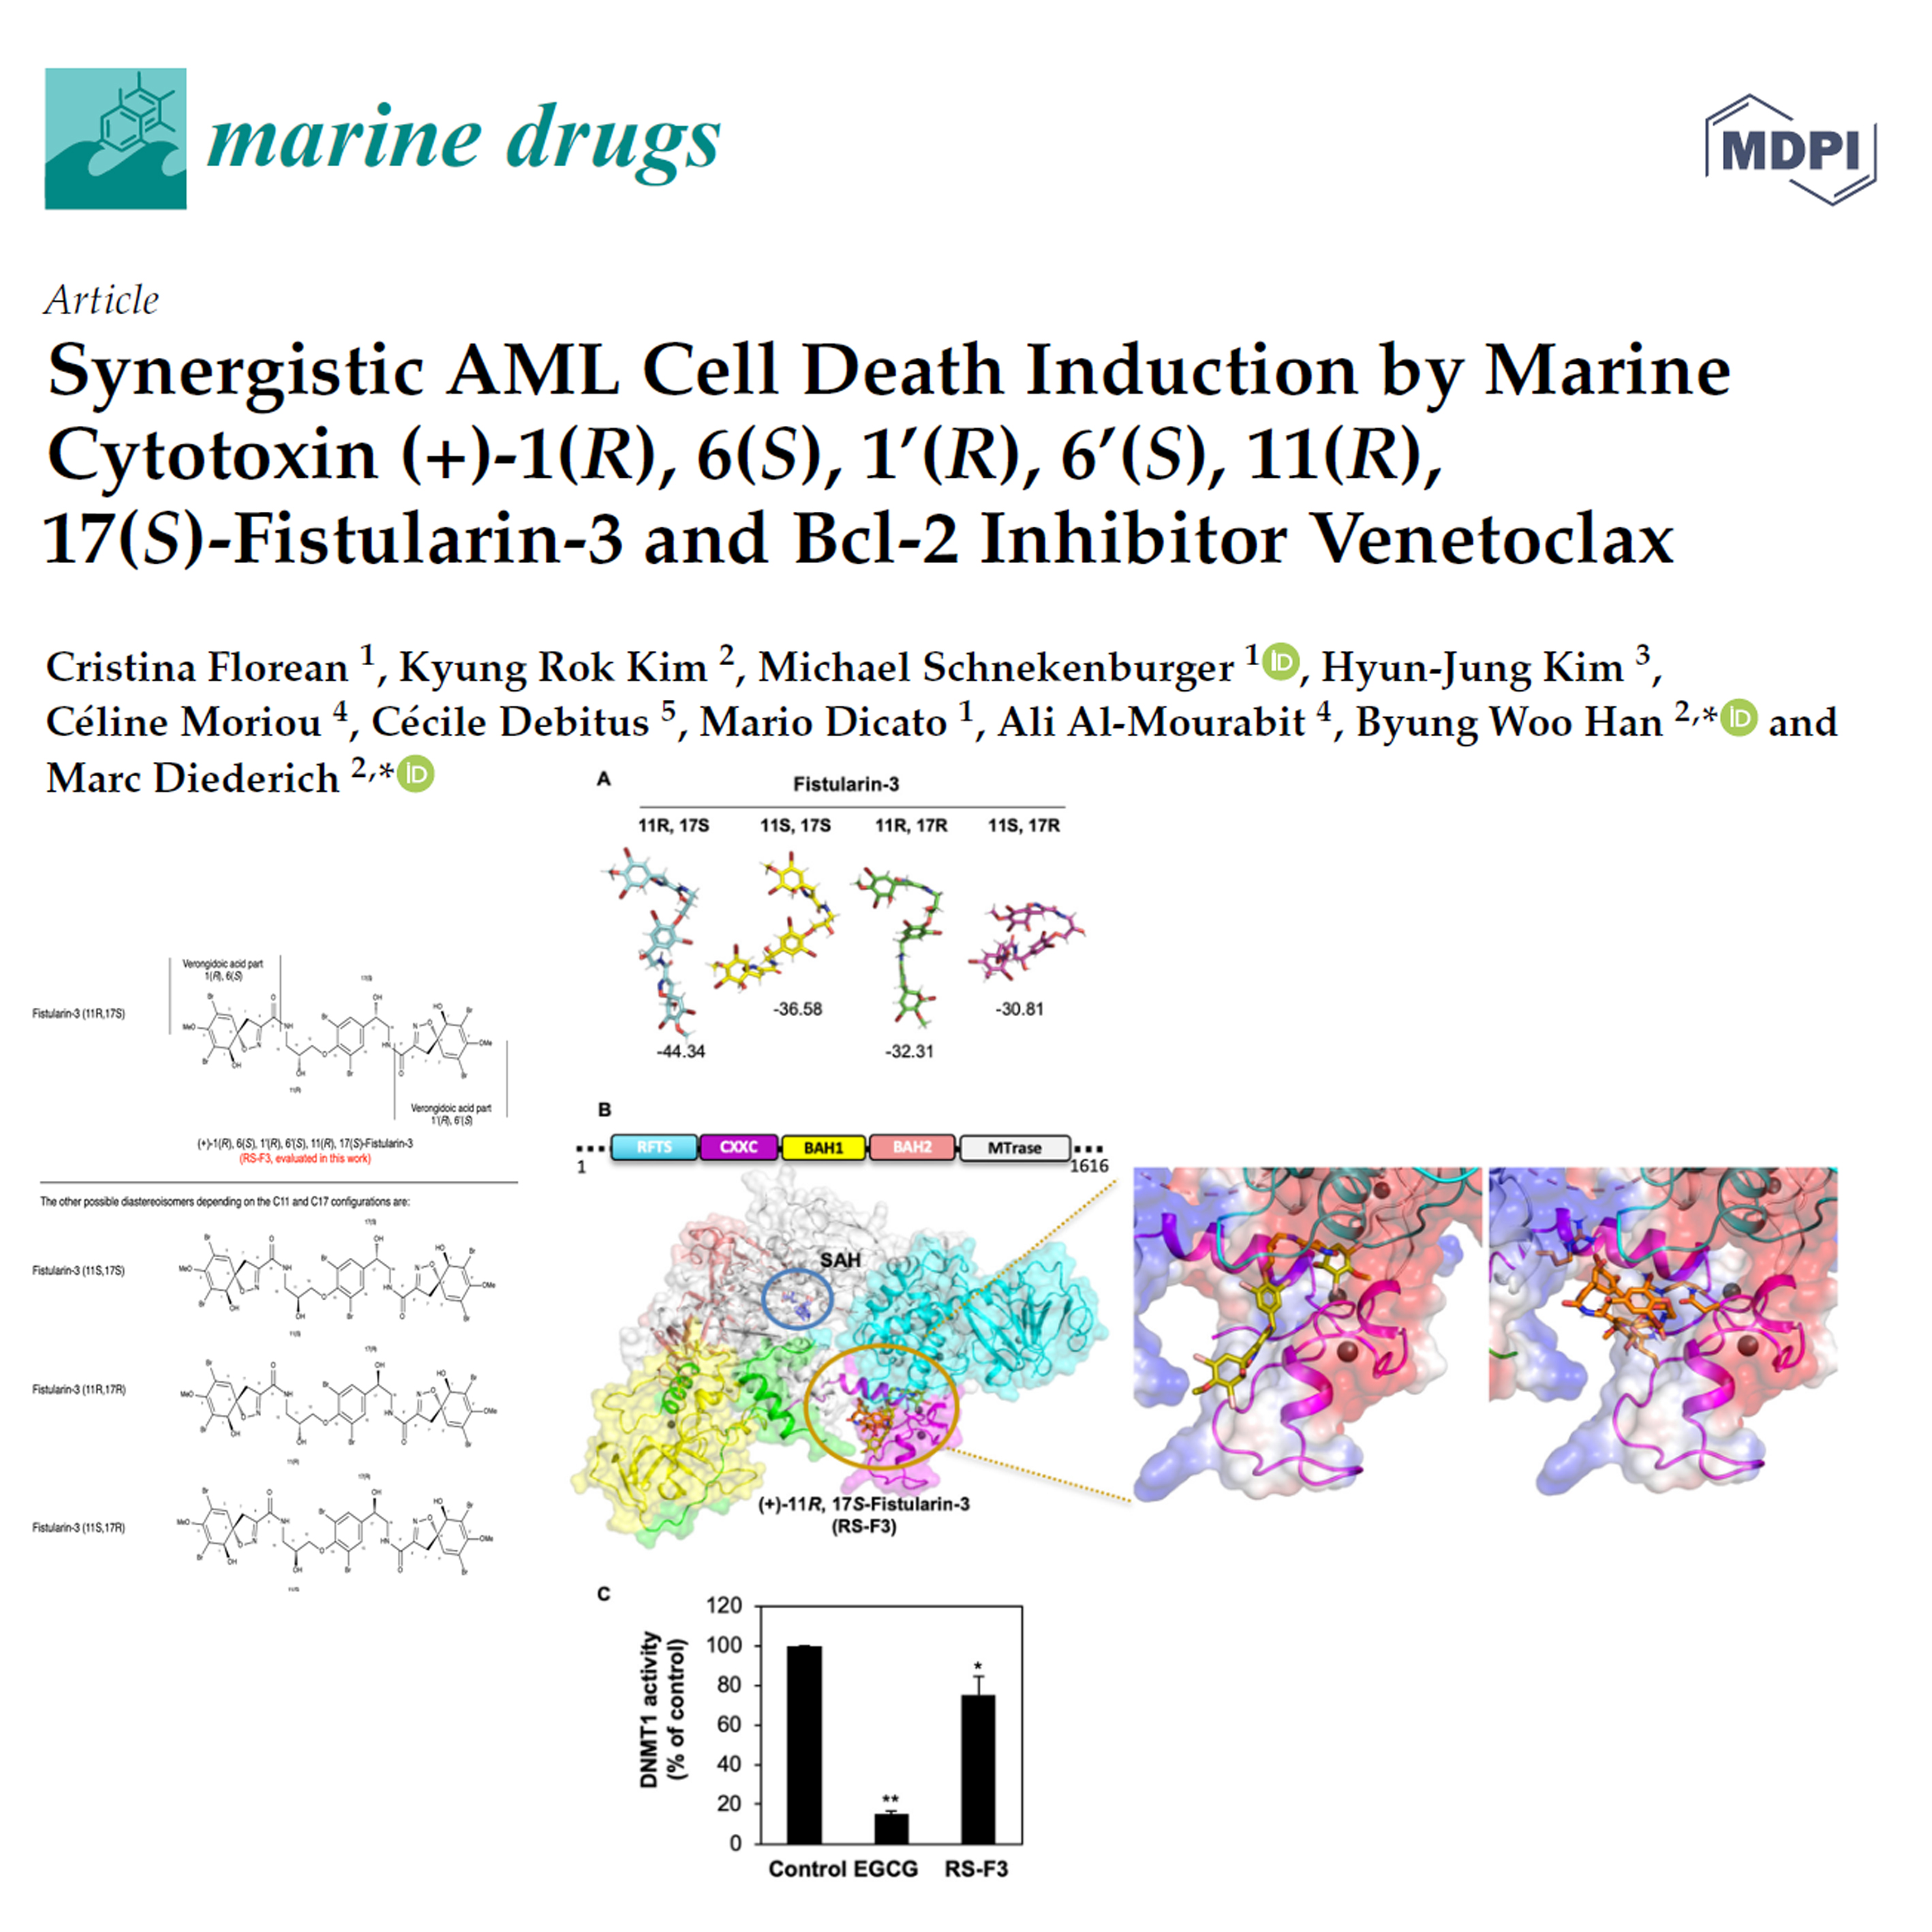 Synergistic AML Cell Death Induction by Marine Cytotoxin (+)-1(R), 6(S), 1'(R), 6'(S), 11(R), 17(S)-Fistularin-3 and Bcl-2 Inhibitor Venetoclax